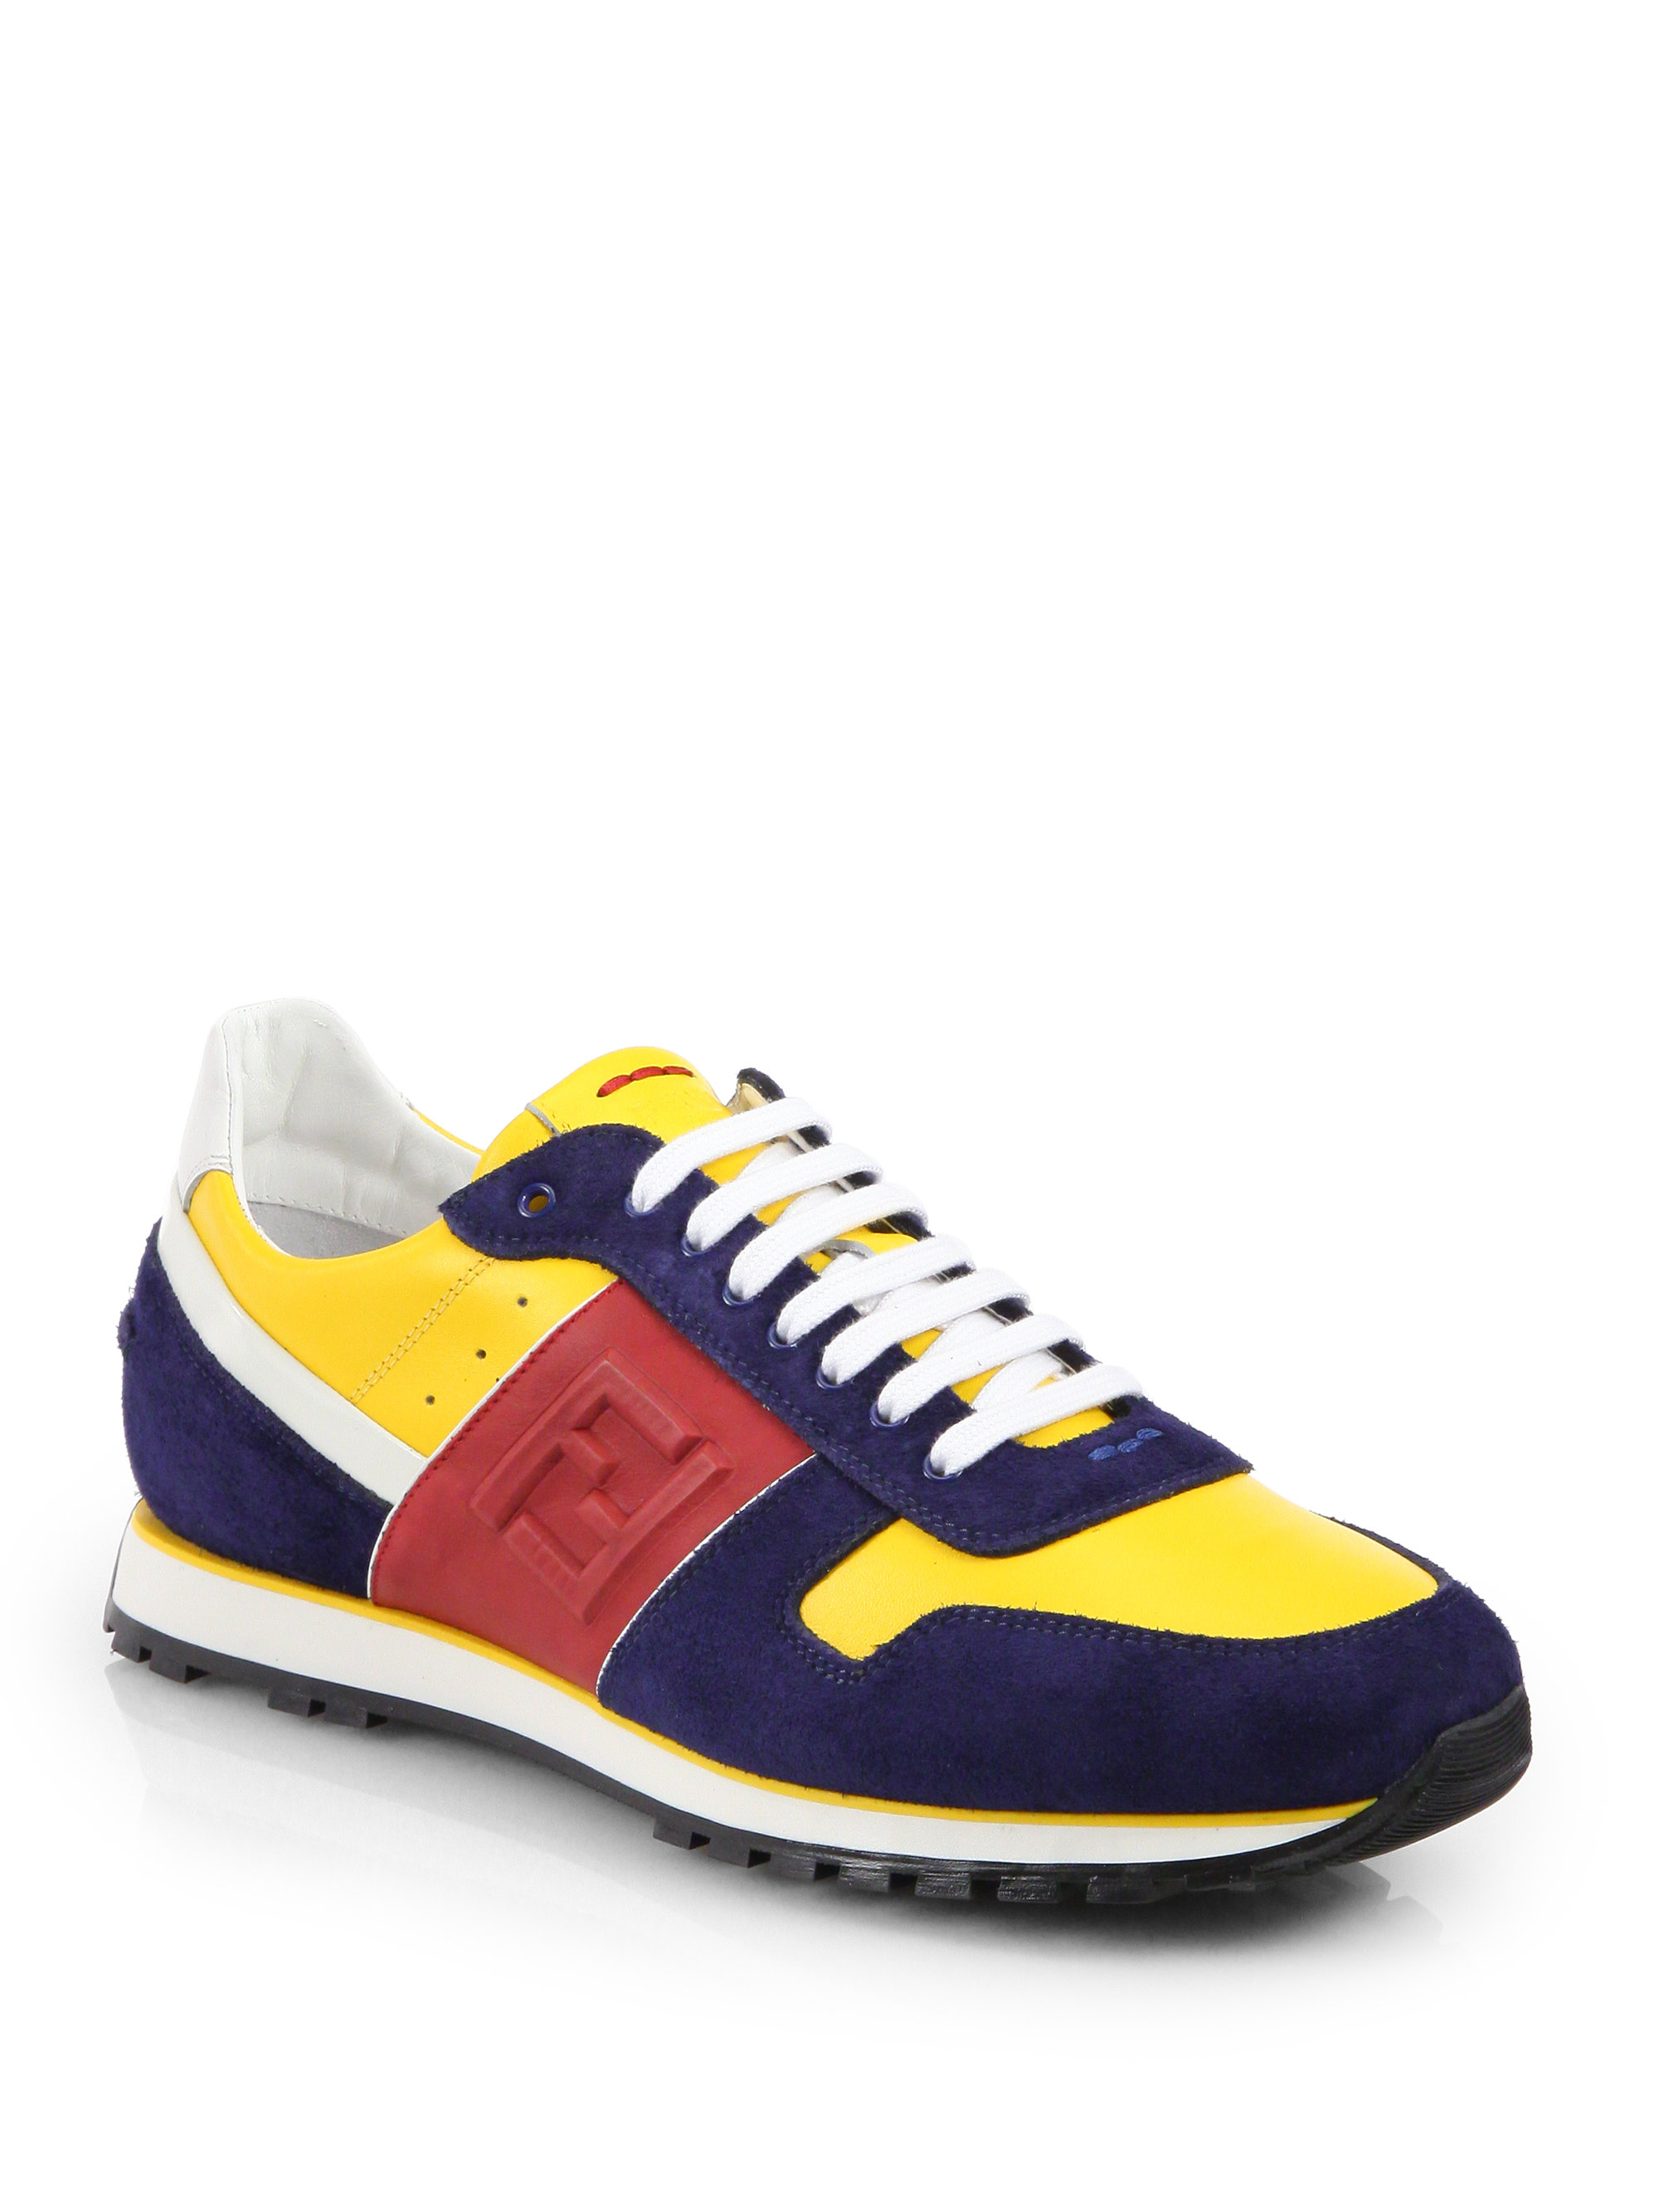 Lyst Fendi Multicolored Laceup Sneakers In Yellow For Men